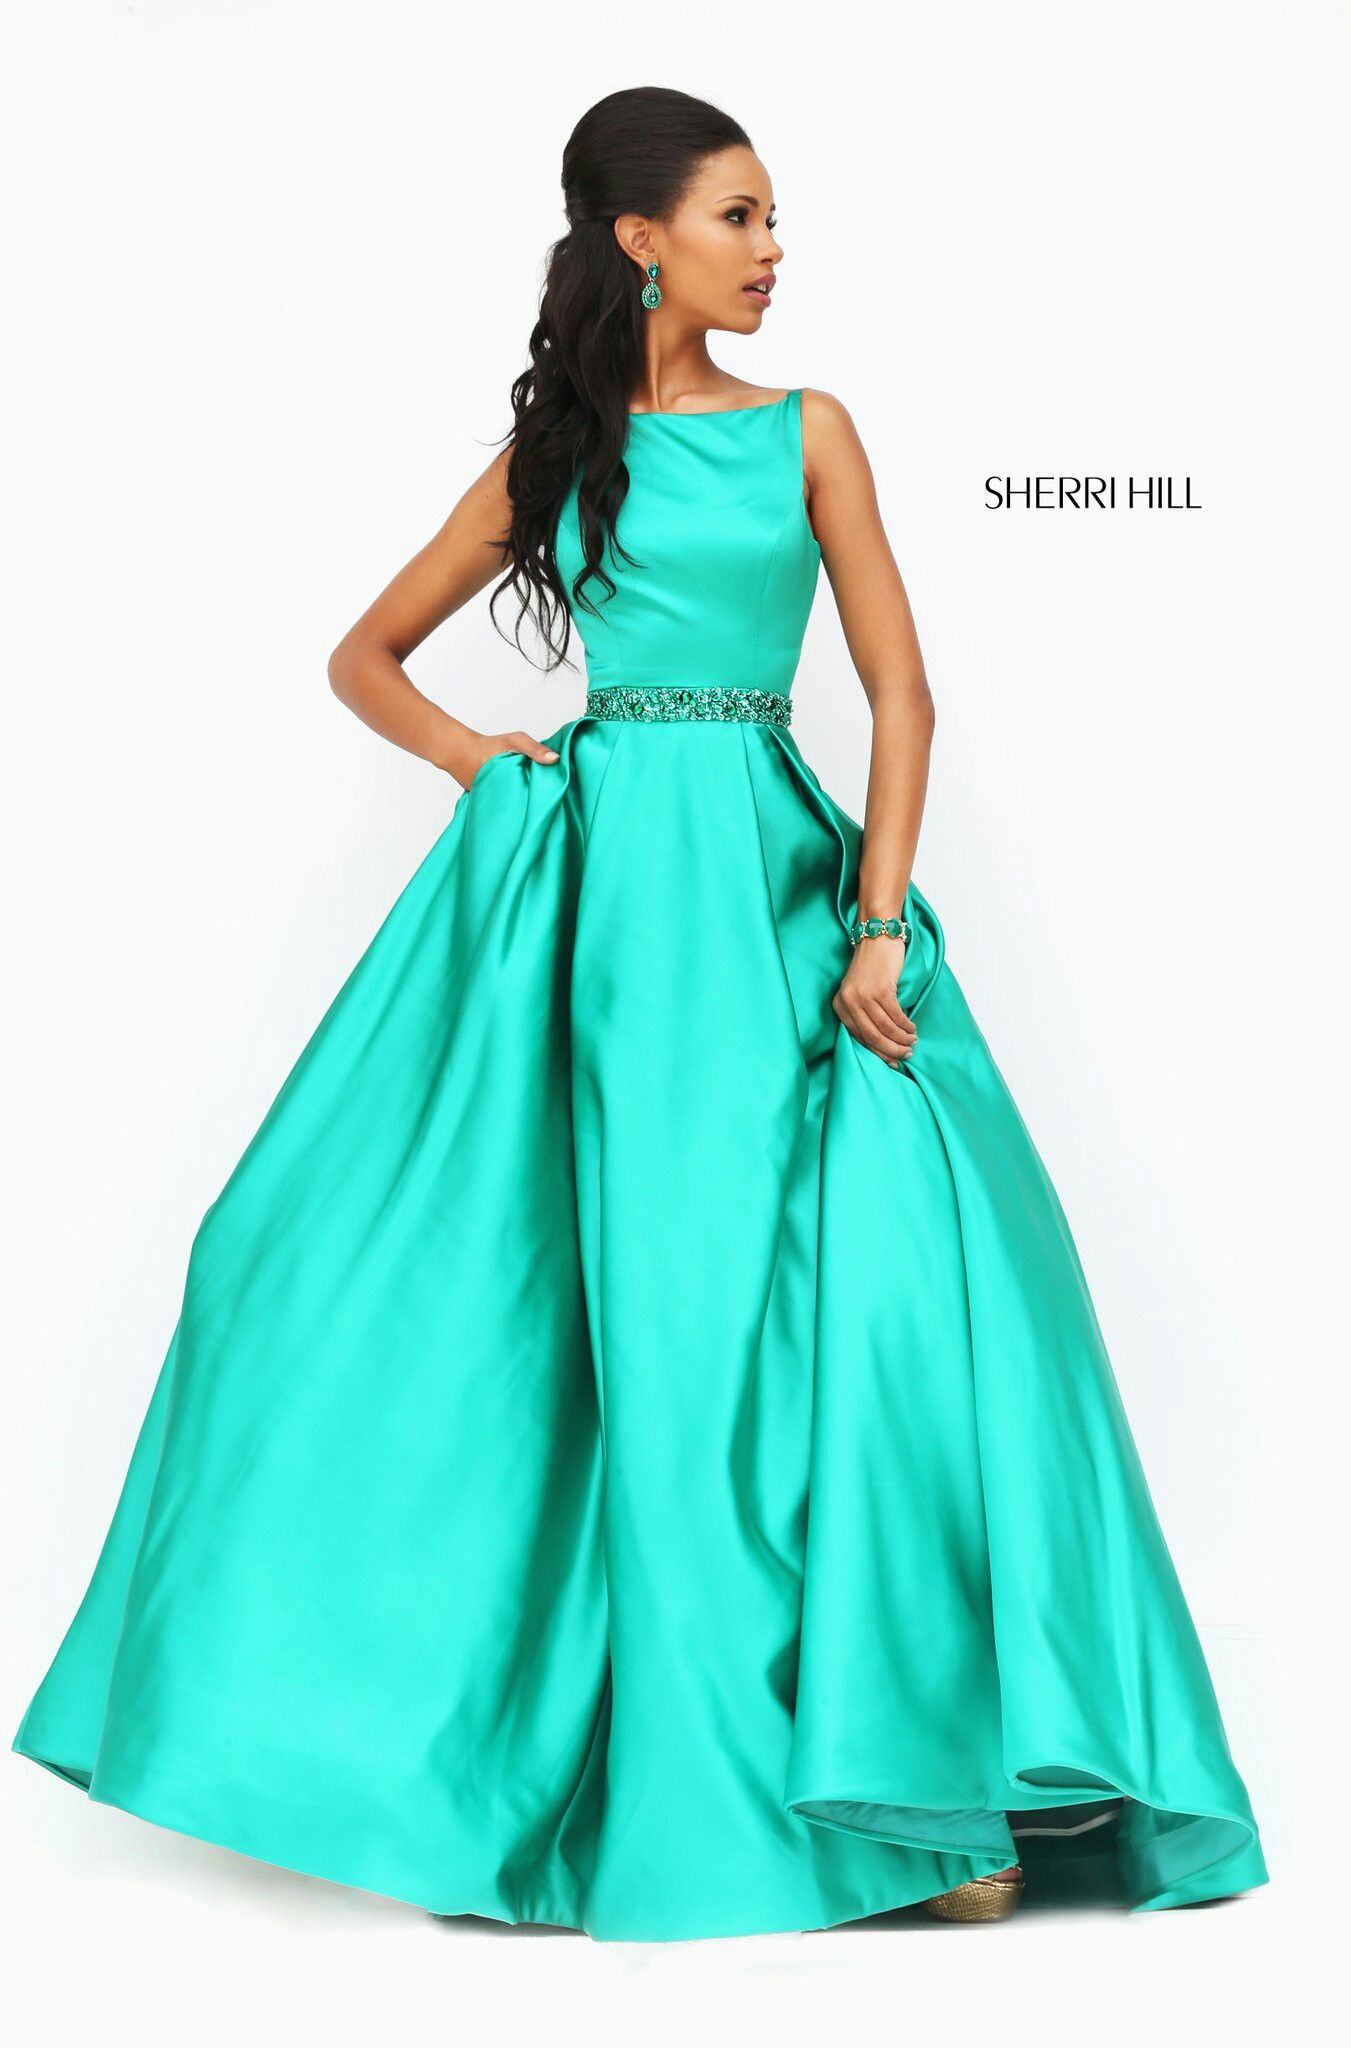 Pin by Michelle Moeller on Prom Dresses | Pinterest | Prom